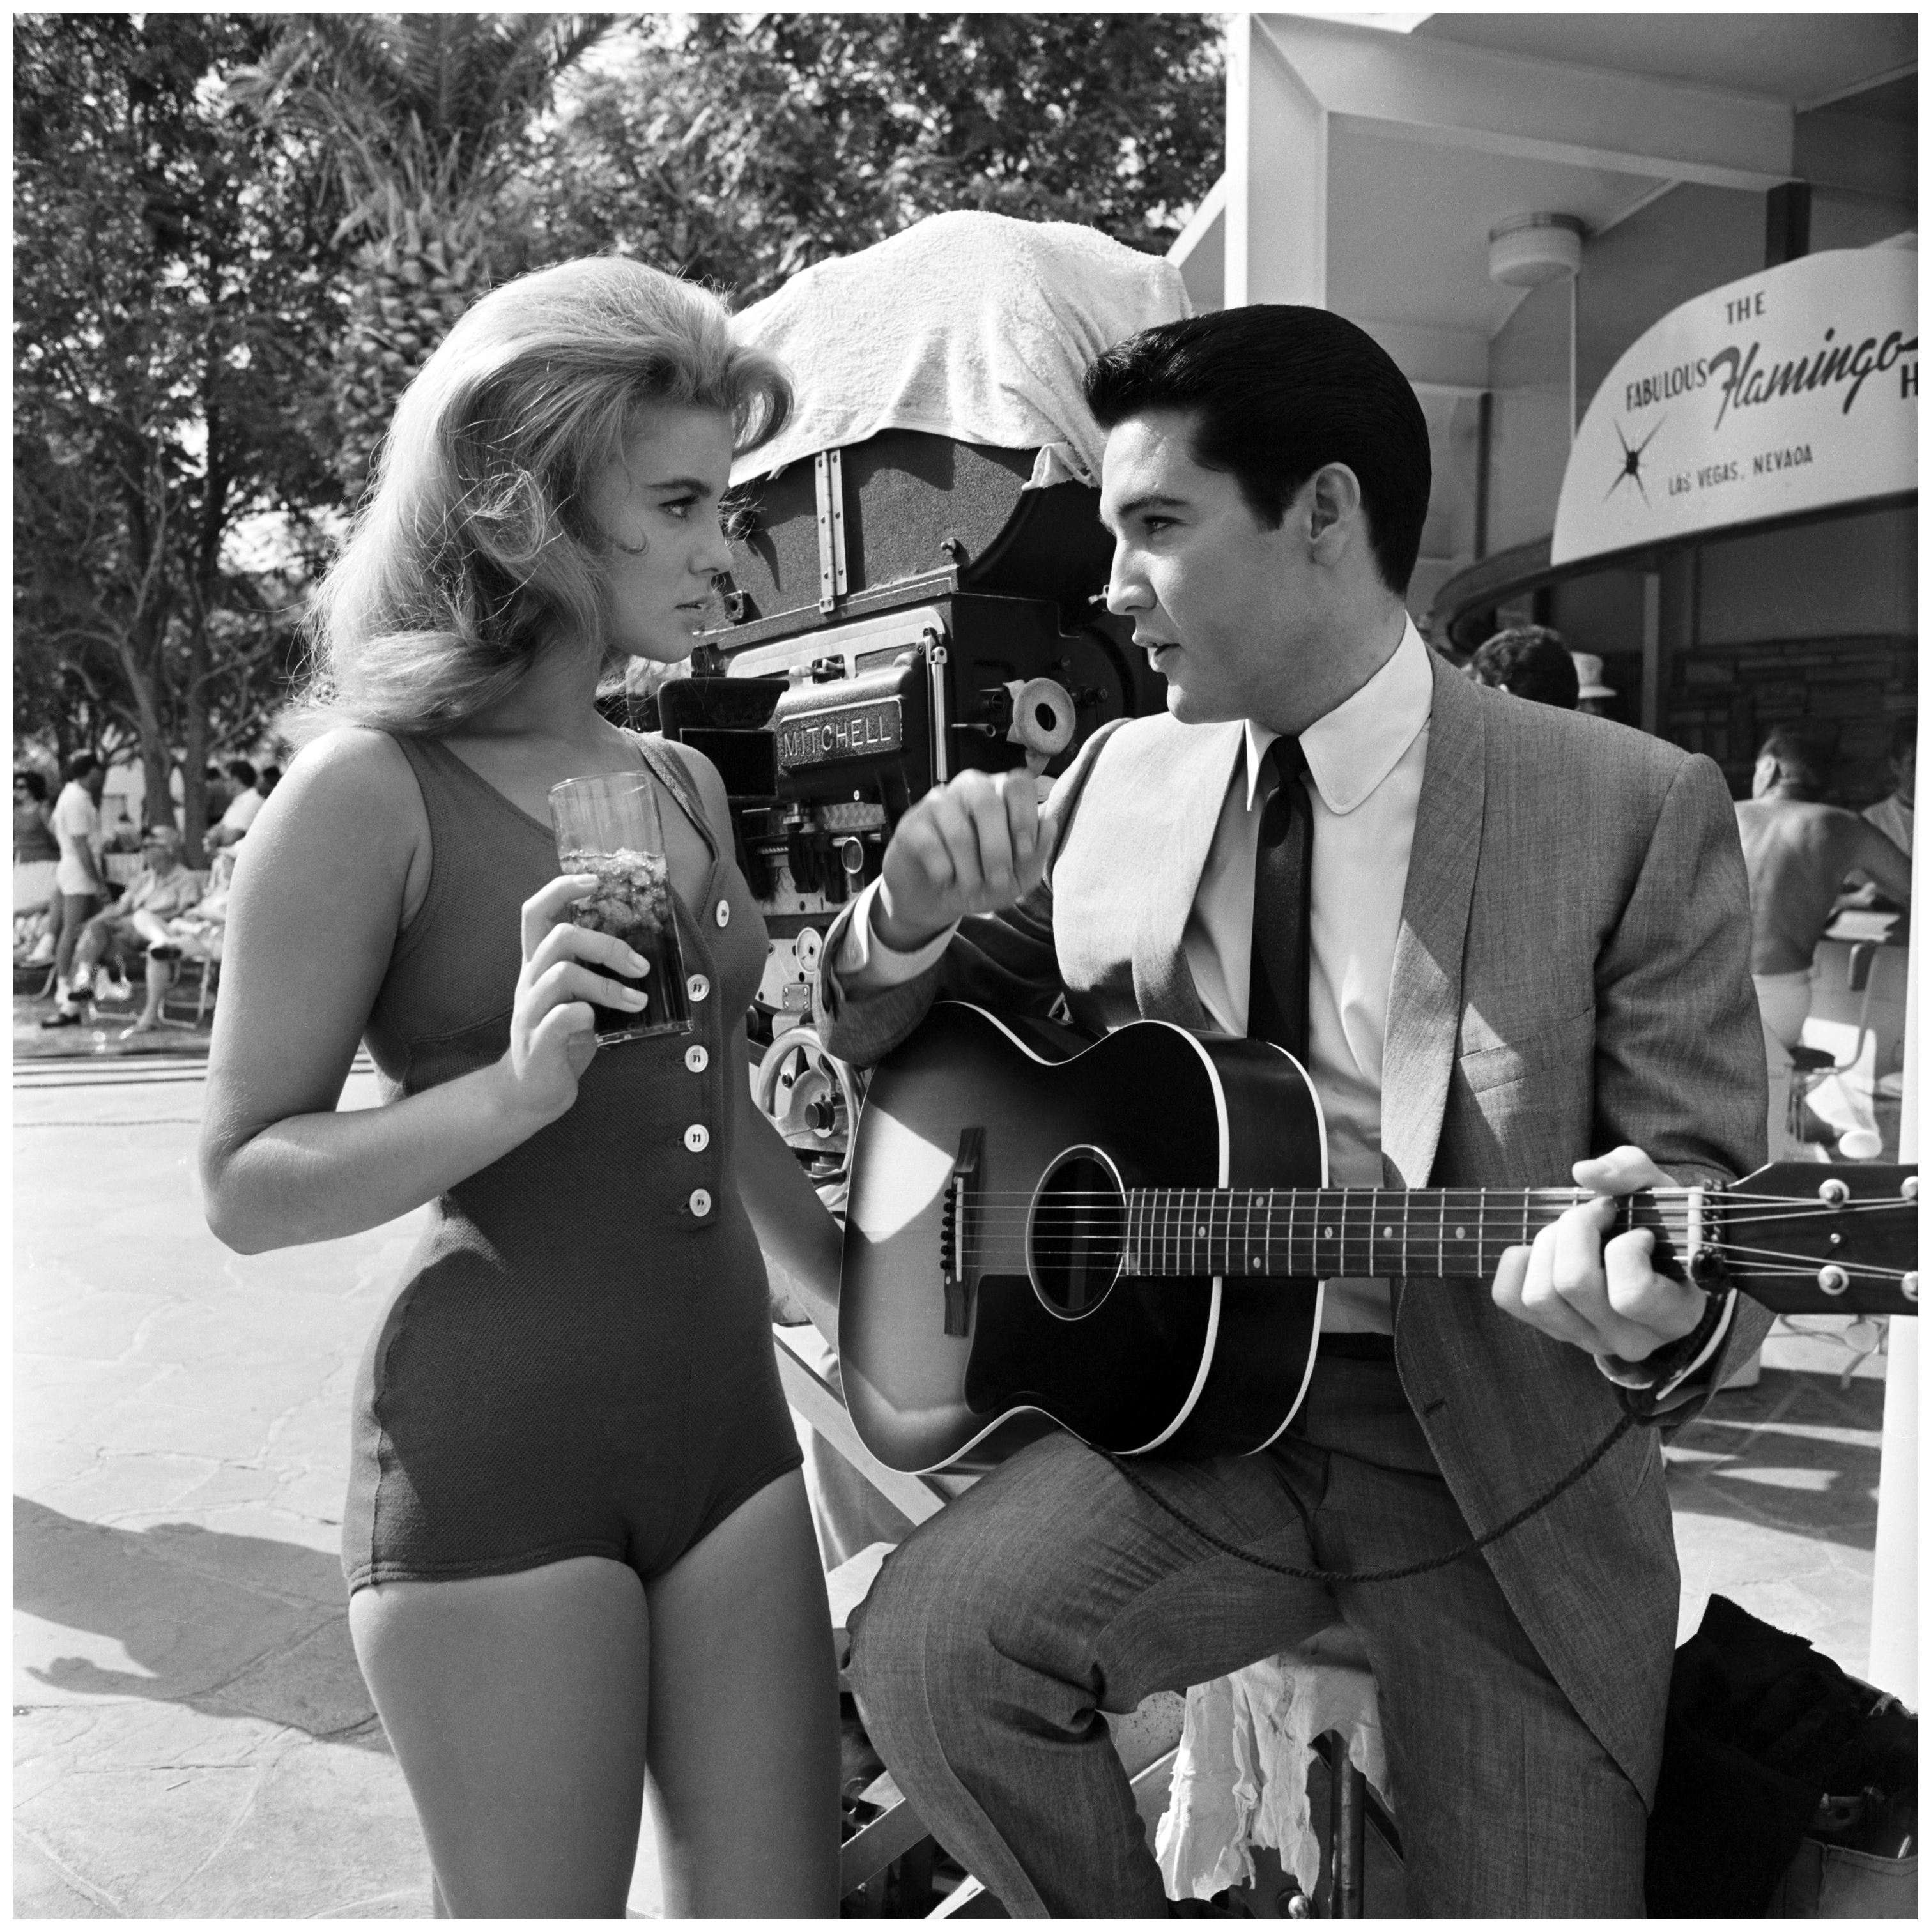 Ann-Margret and Elvis Presley rehearse the duet they are to sing in the film